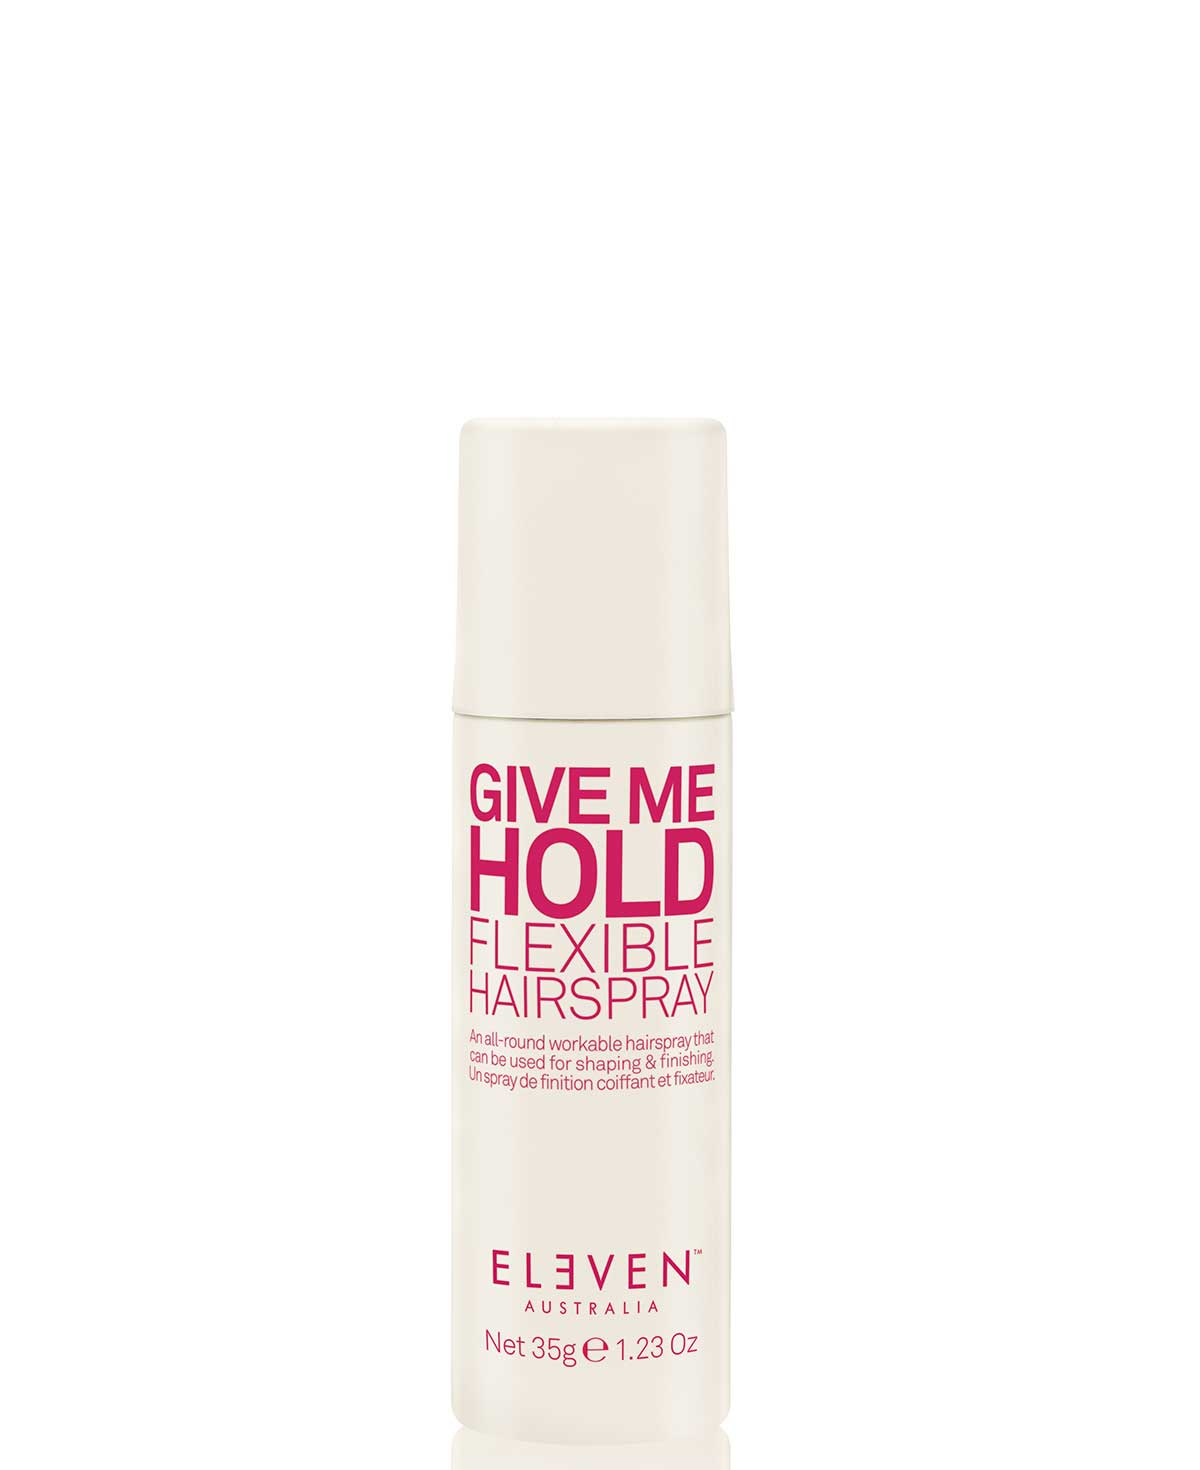 Eleven Give Me Hold Flexible Hairspray 50ml